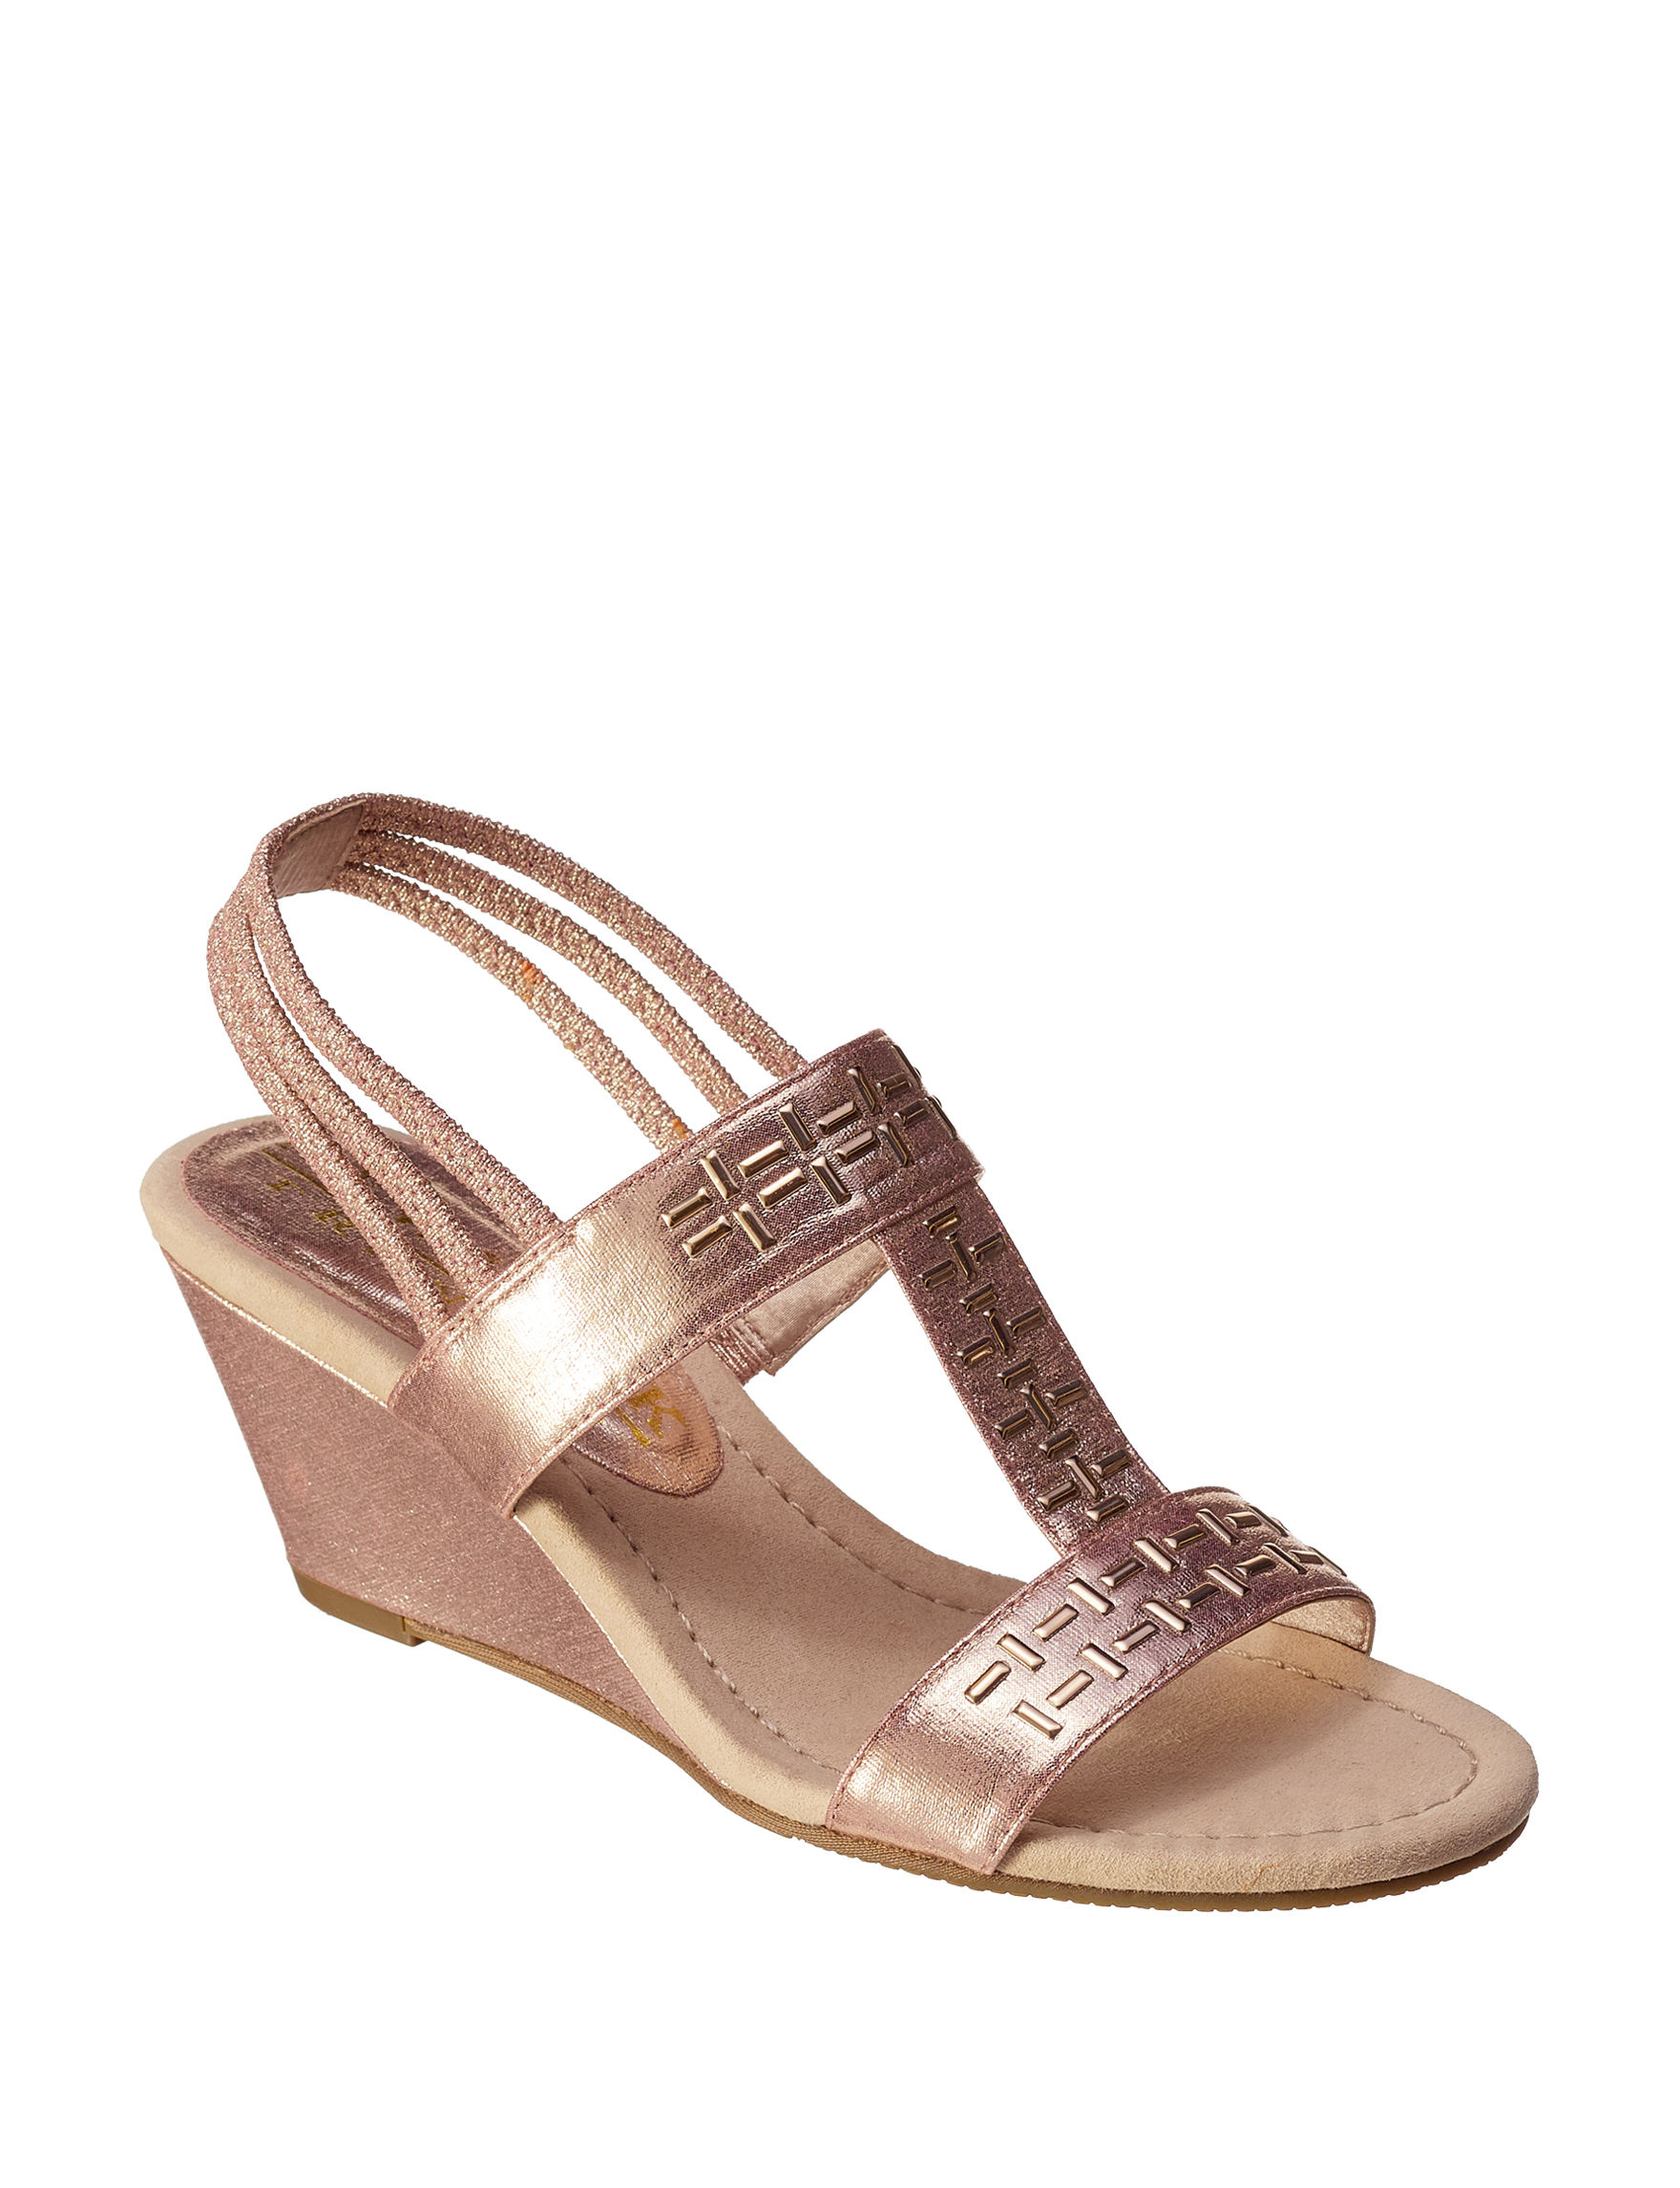 New York Transit Peach Wedge Sandals